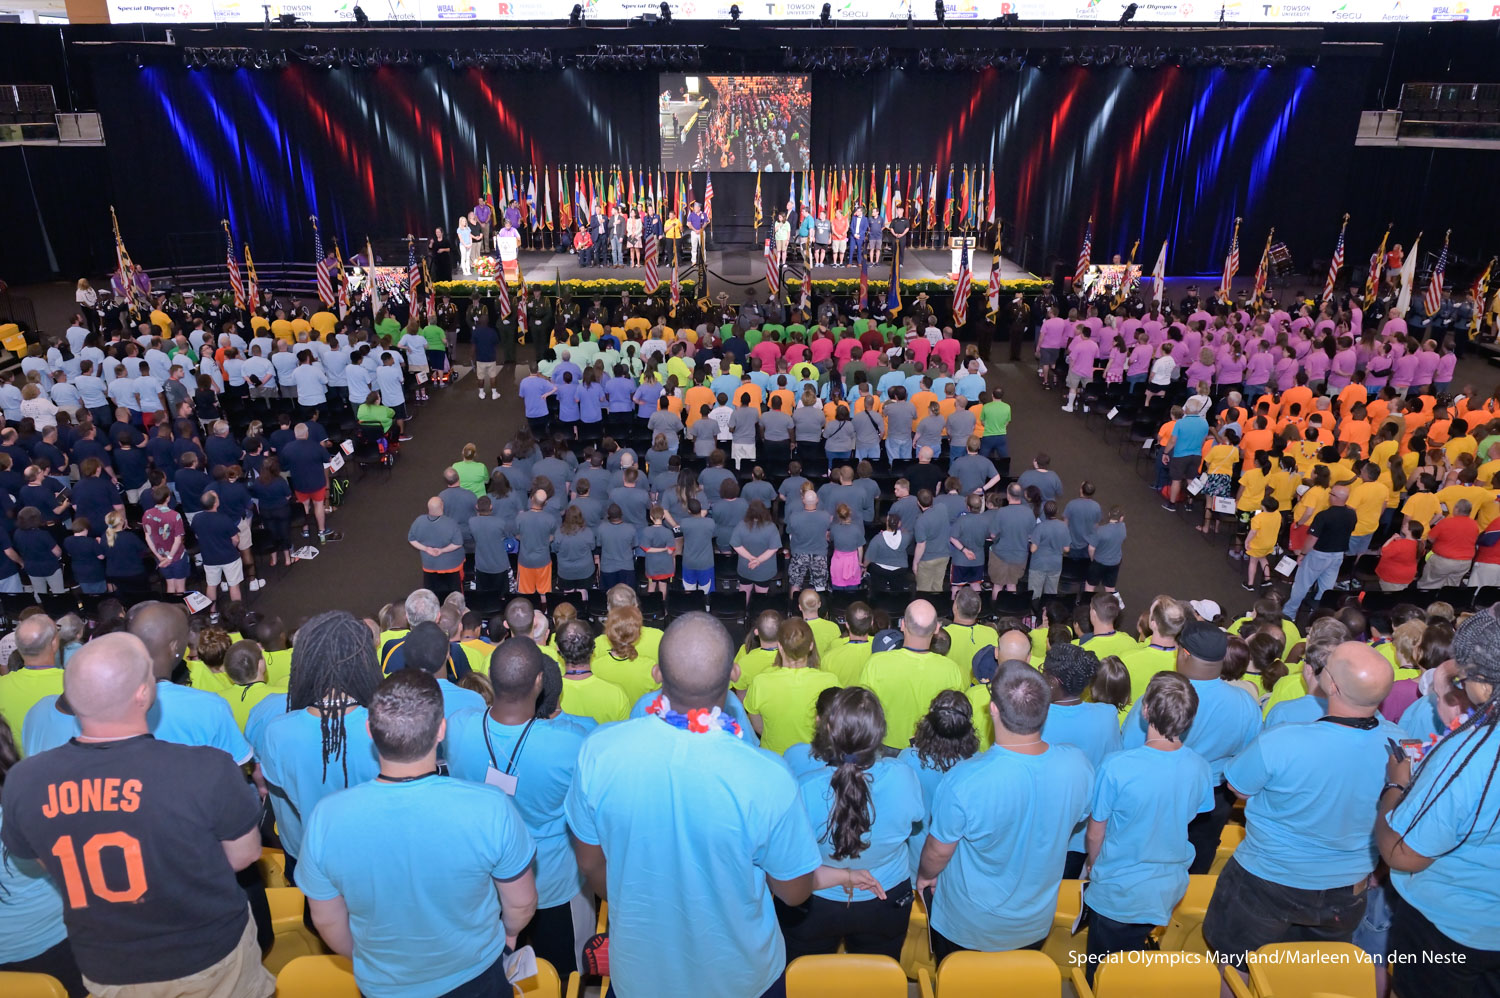 Opening Ceremony in SECU Arena at Towson University, MD on Friday, June 7, 2019. Over the course of three days 1500 athletes and Unified Partners will compete in athletics, softball, cheerleading, bocce or swimming.